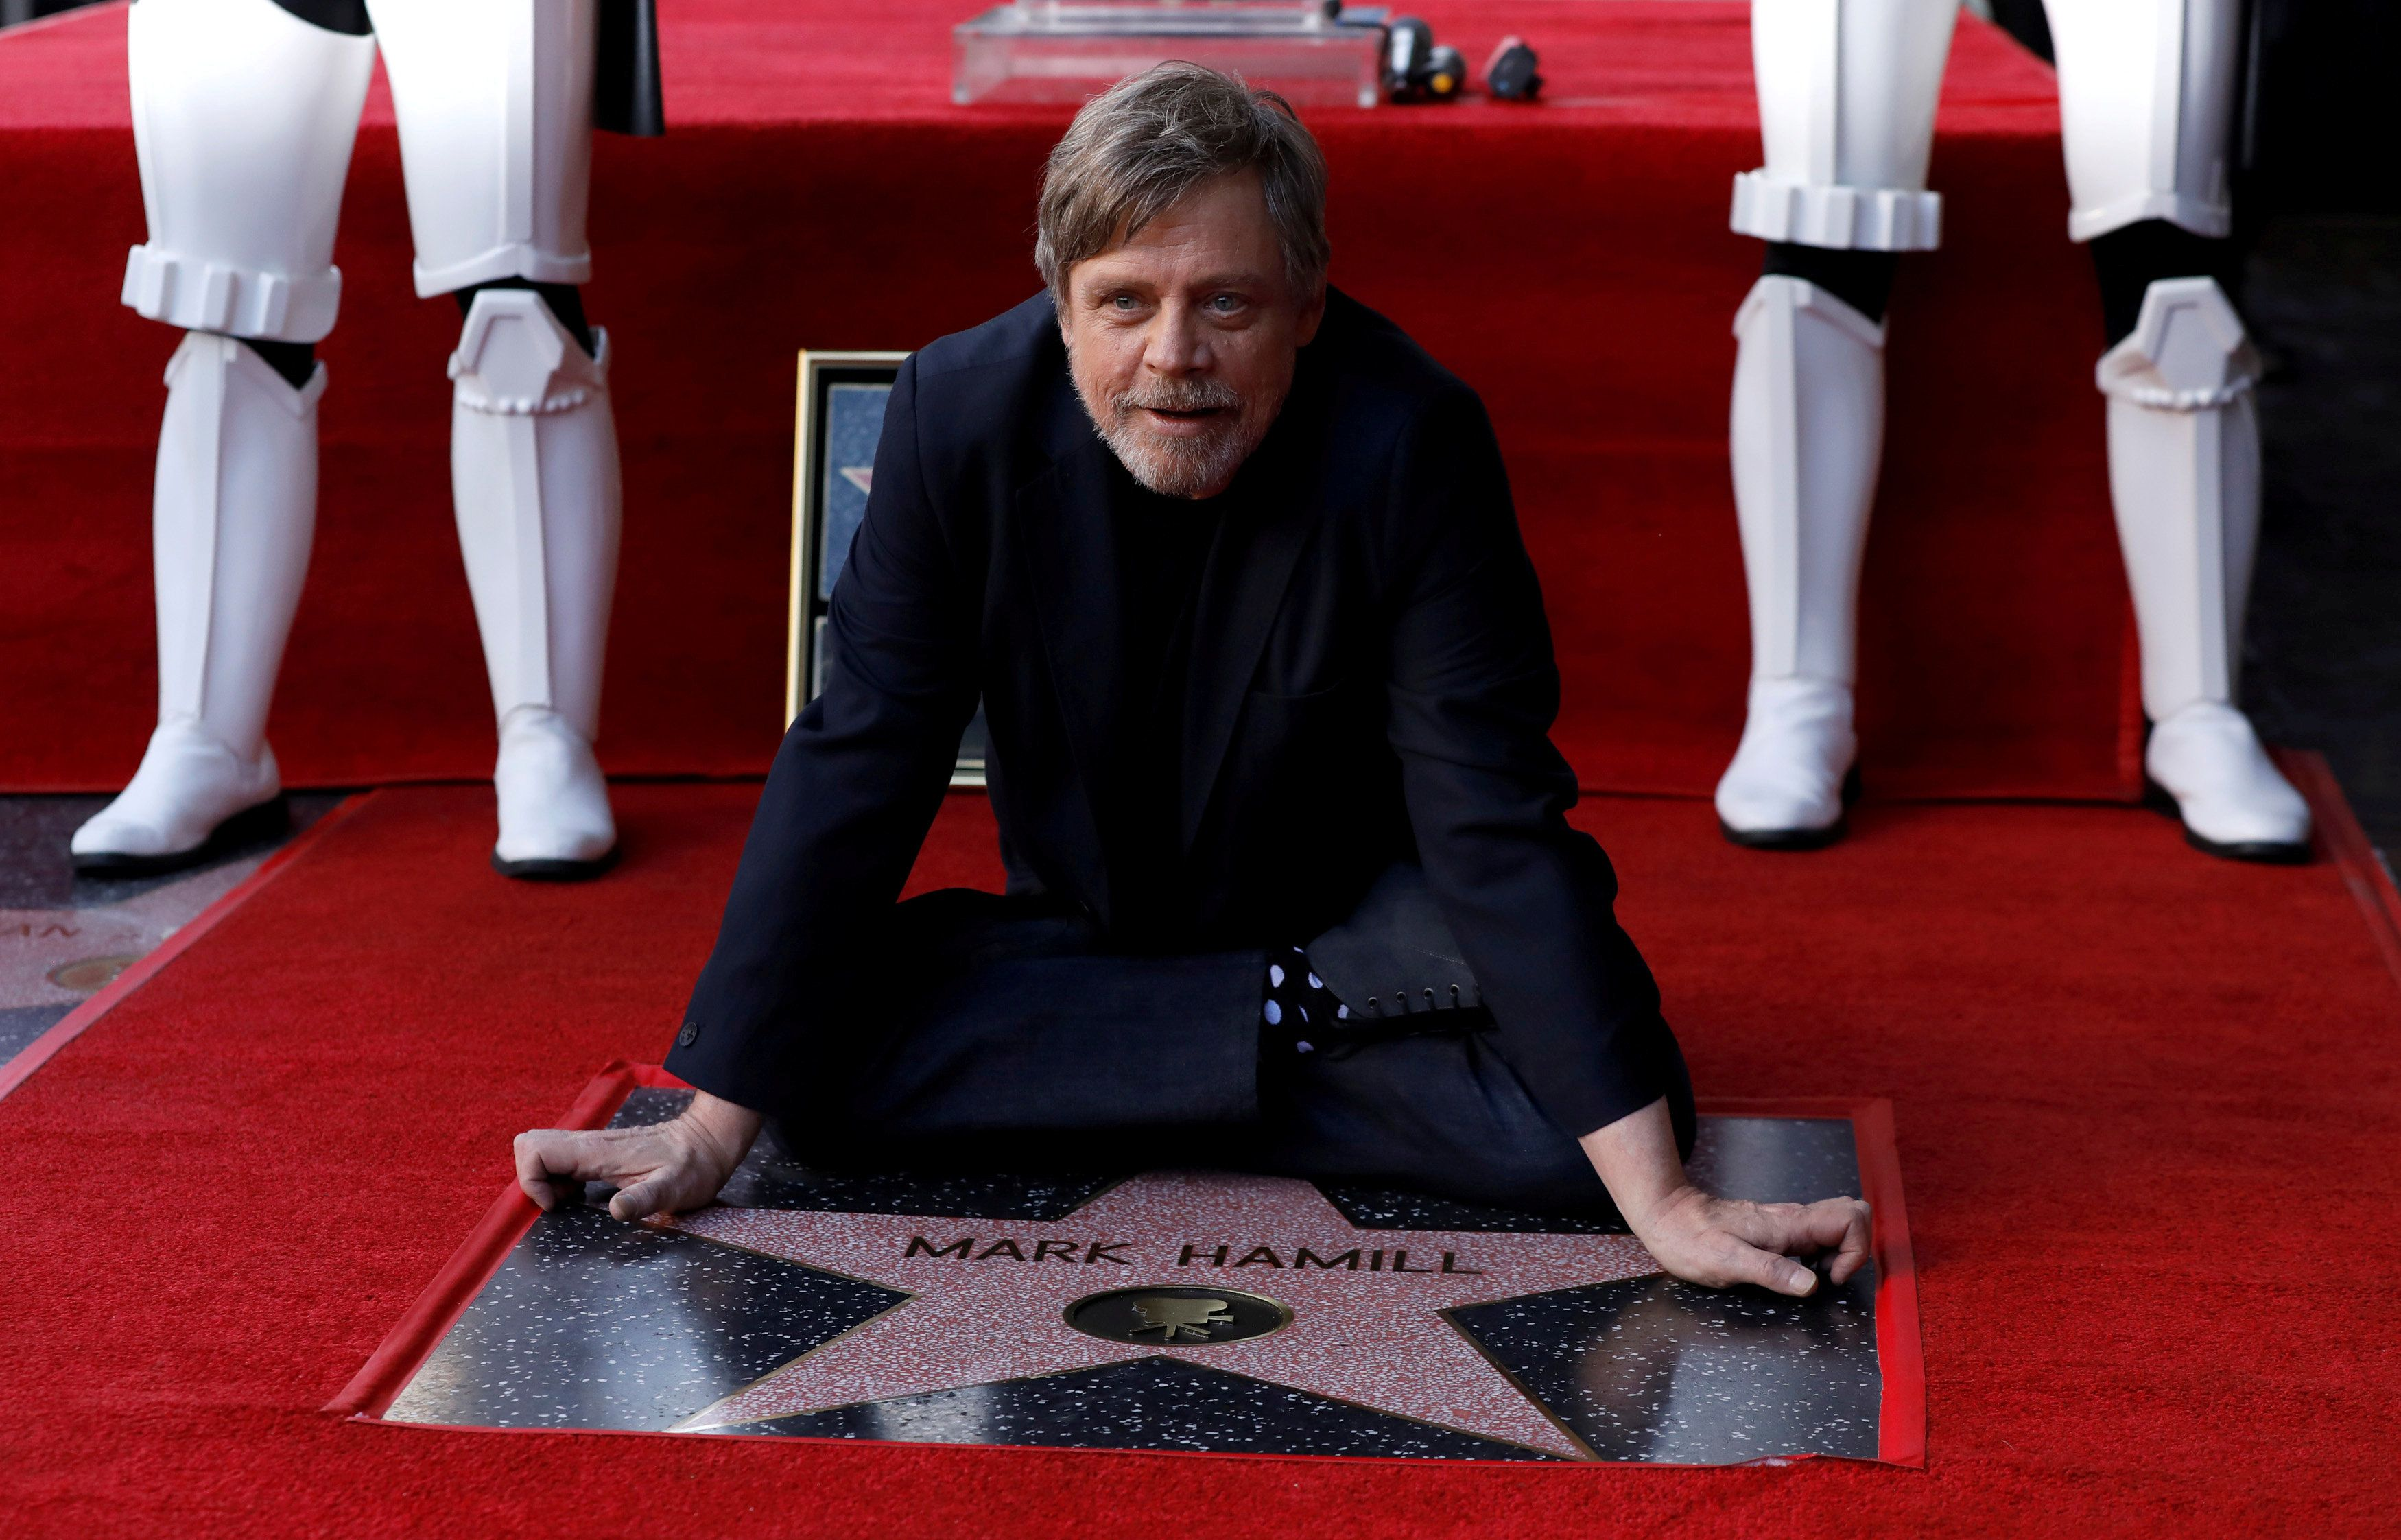 Mark Hamill says Luke Skywalker was meant to die in Episode IX